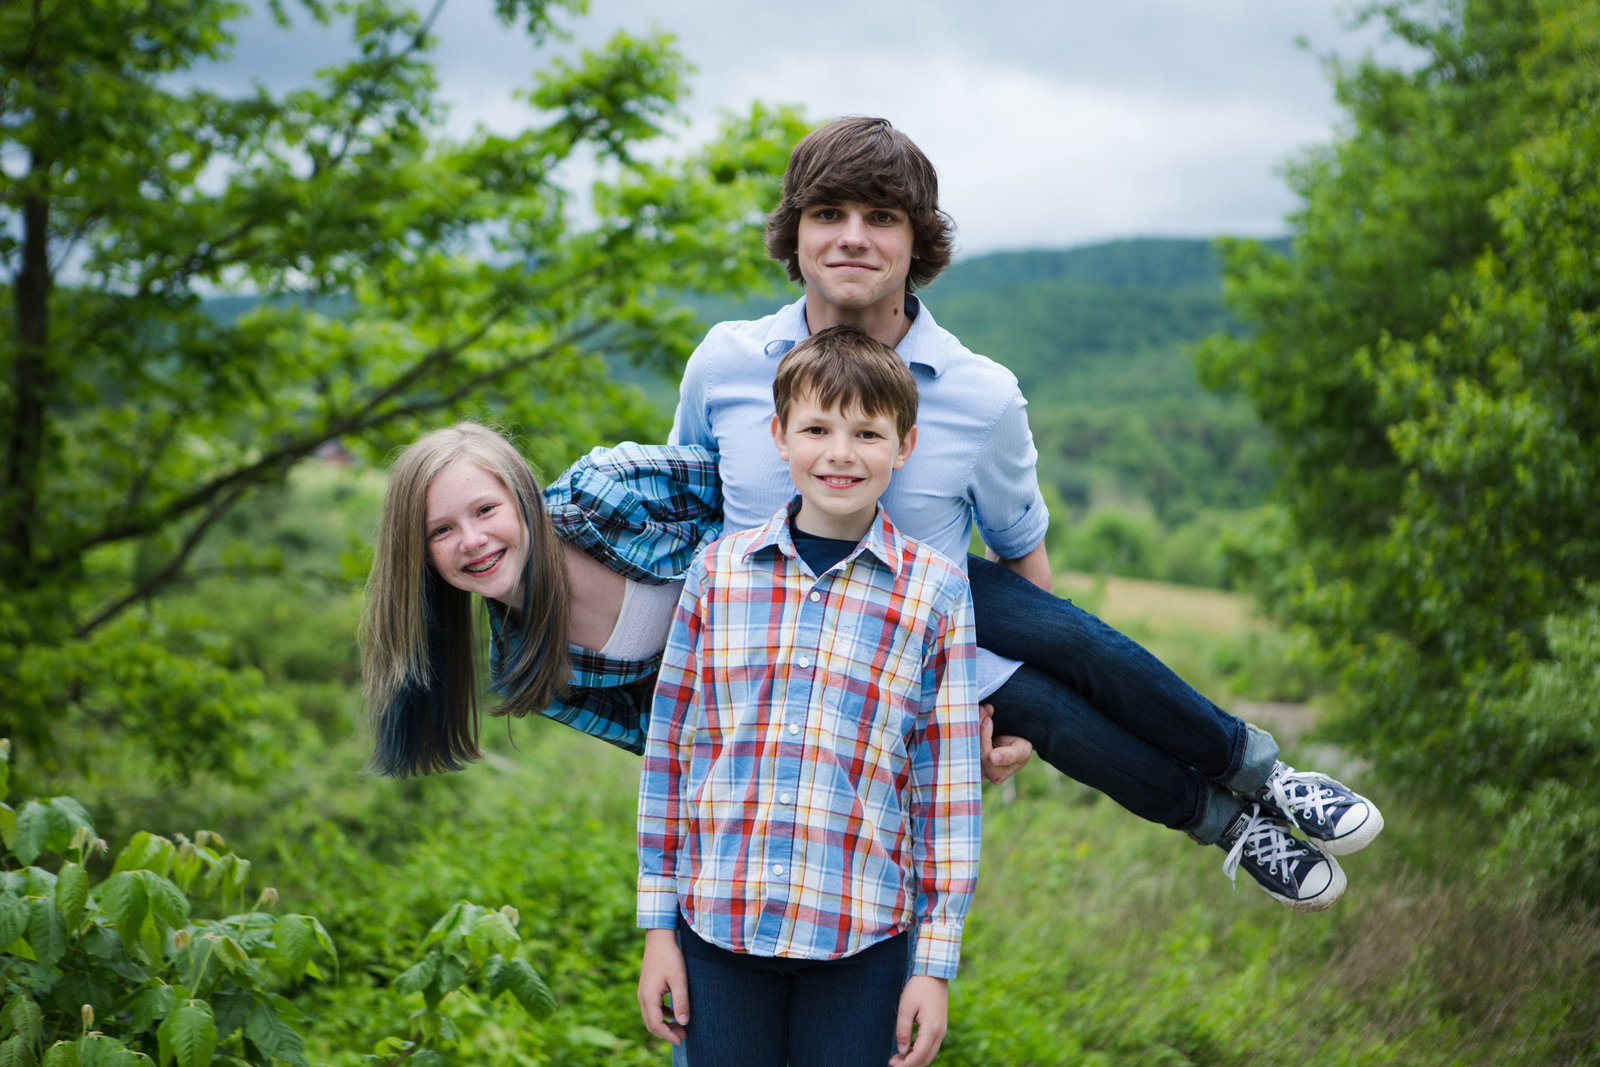 family children portrait skyryder engagement wedding photography blacksburg roanoke charlottesville lexington radford-078